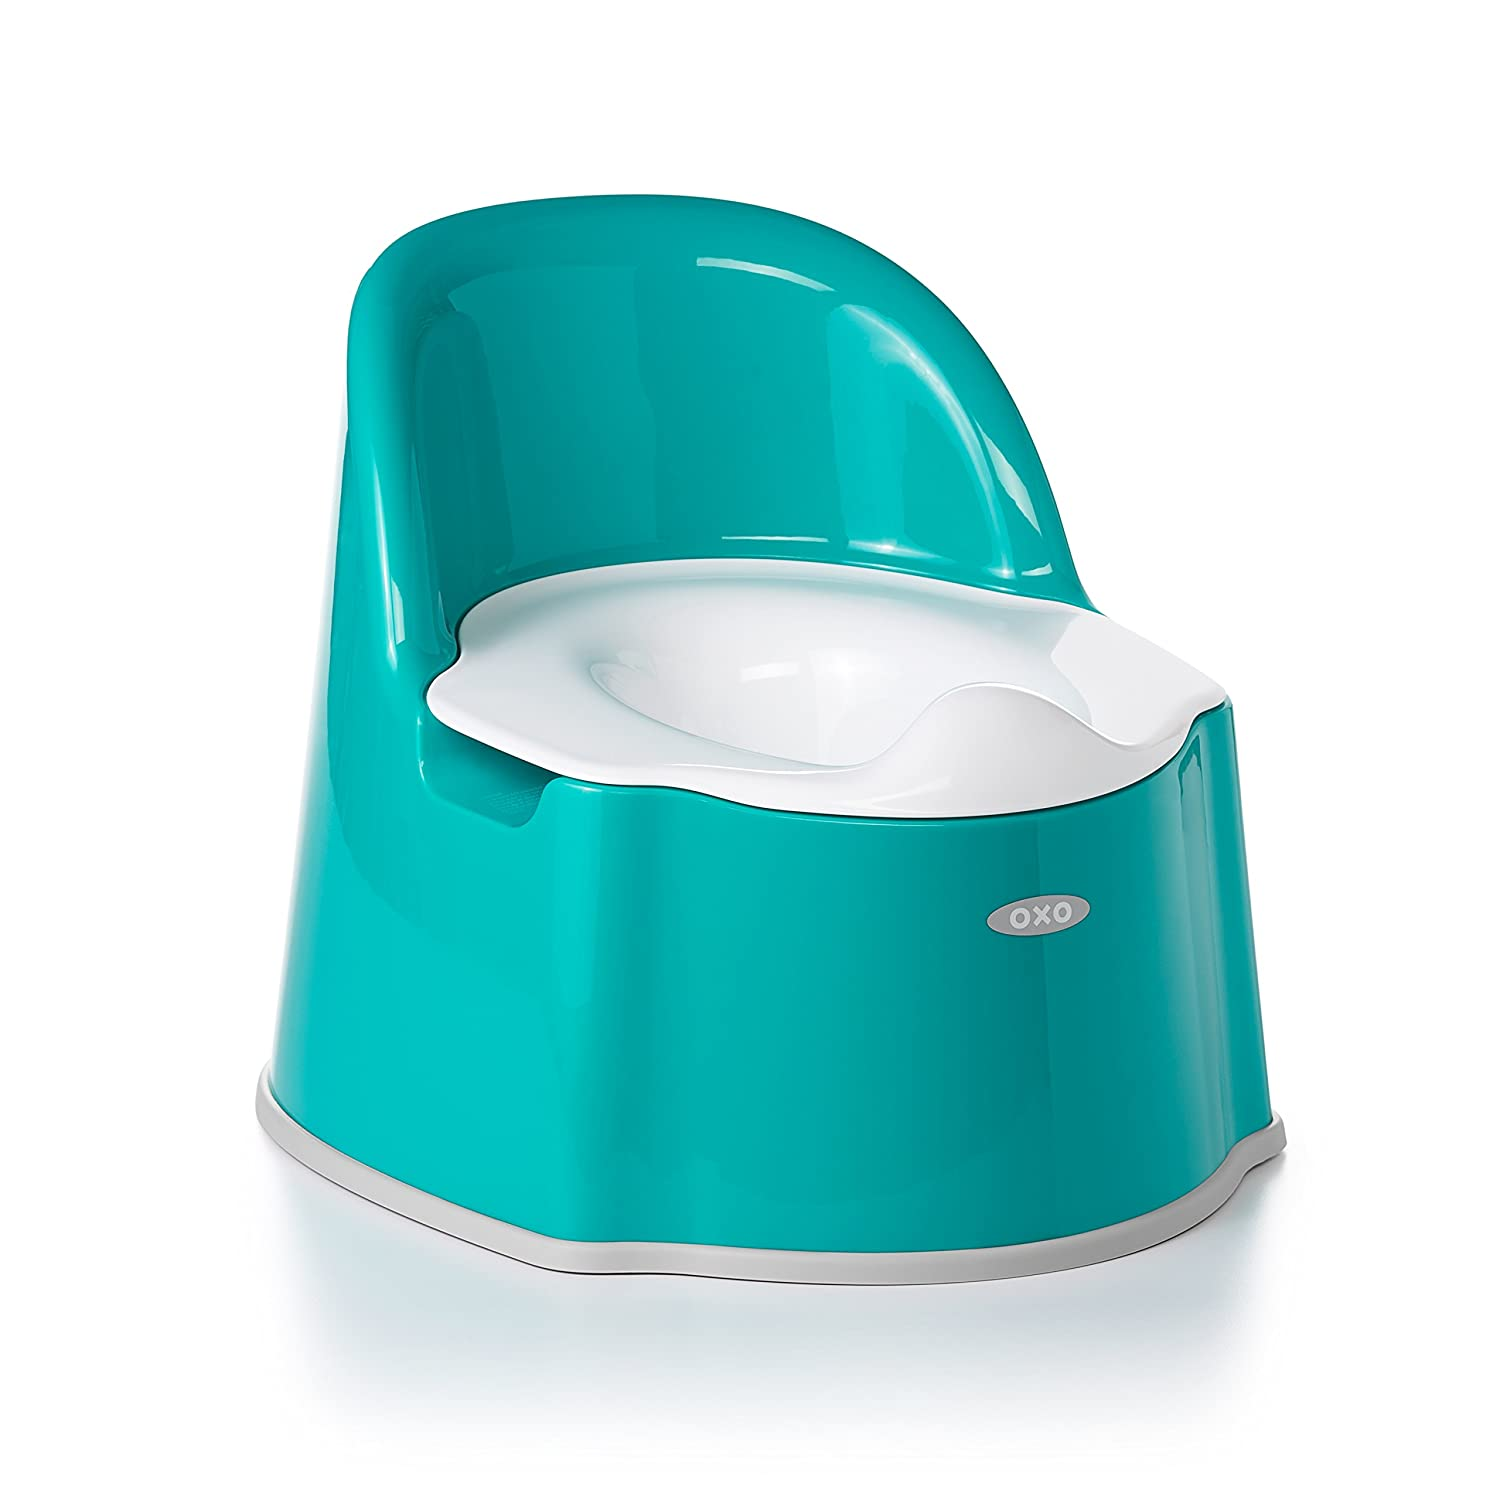 OXO Tot Potty Chair - Teal 63115800